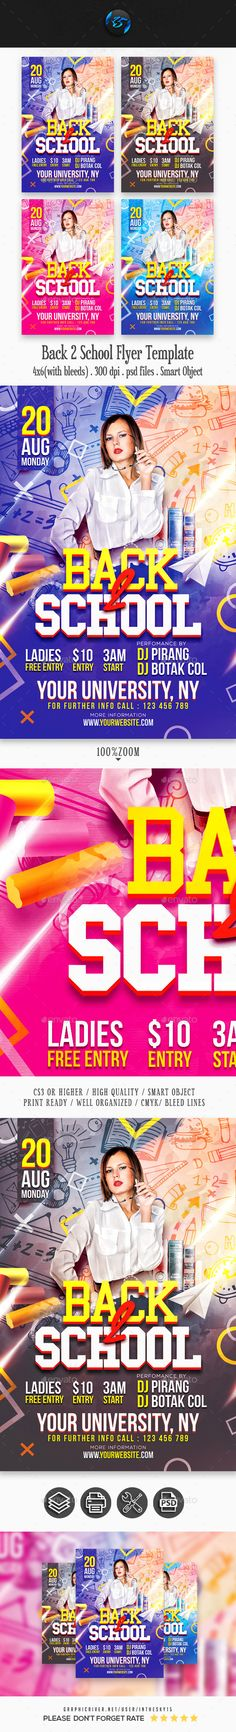 Buy Back 2 School Flyer Template by on GraphicRiver. Back 2 School Flyer Template Features : 1 PSD files, Fully Layered Adobe Photoshop Size inchi (with bleed). Free Flyer Templates, Event Flyer Templates, Birthday Flyer, School Template, Fb Timeline Cover, Halloween Flyer, Sports Flyer, Festival Flyer, Back 2 School